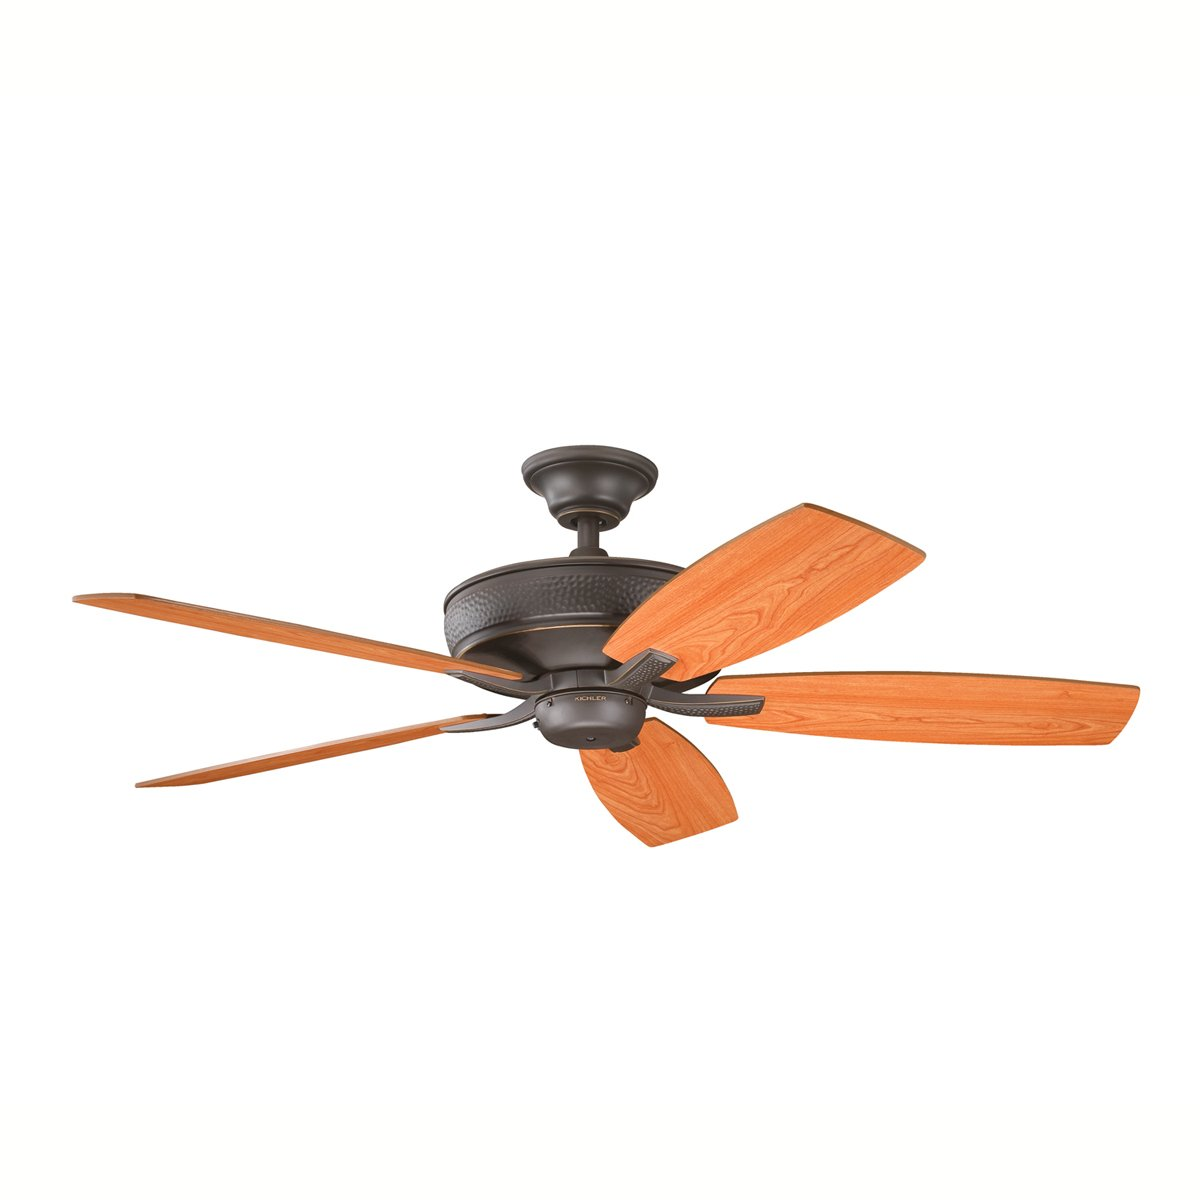 Kichler 339013obb 52 inch monarch ii fan oil brushed bronze kichler 339013obb 52 inch monarch ii fan oil brushed bronze rustic ceiling fan amazon aloadofball Choice Image